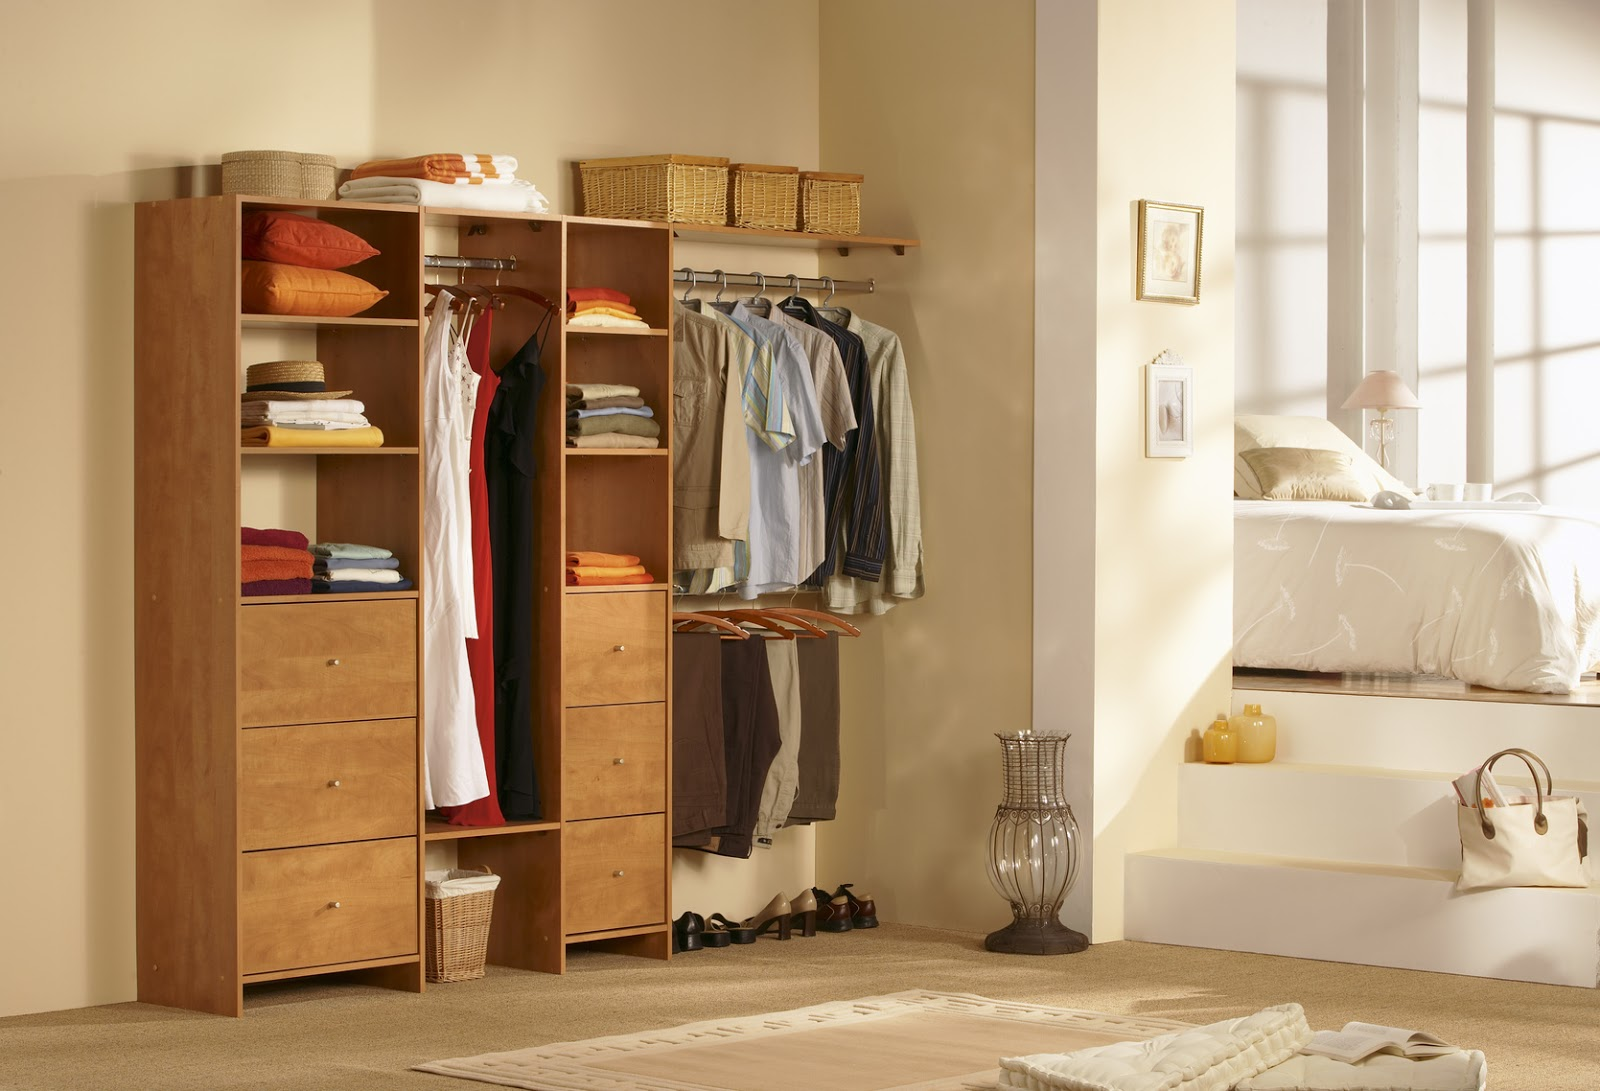 Keep only seasonal clothing in your closet. Use bins old trunk or old suit cases as storage for off season items. 5. Use hooks on your closet walls for ... & S.O.S. the life of an organizer: 10 ways to keep your bedroom closet ...